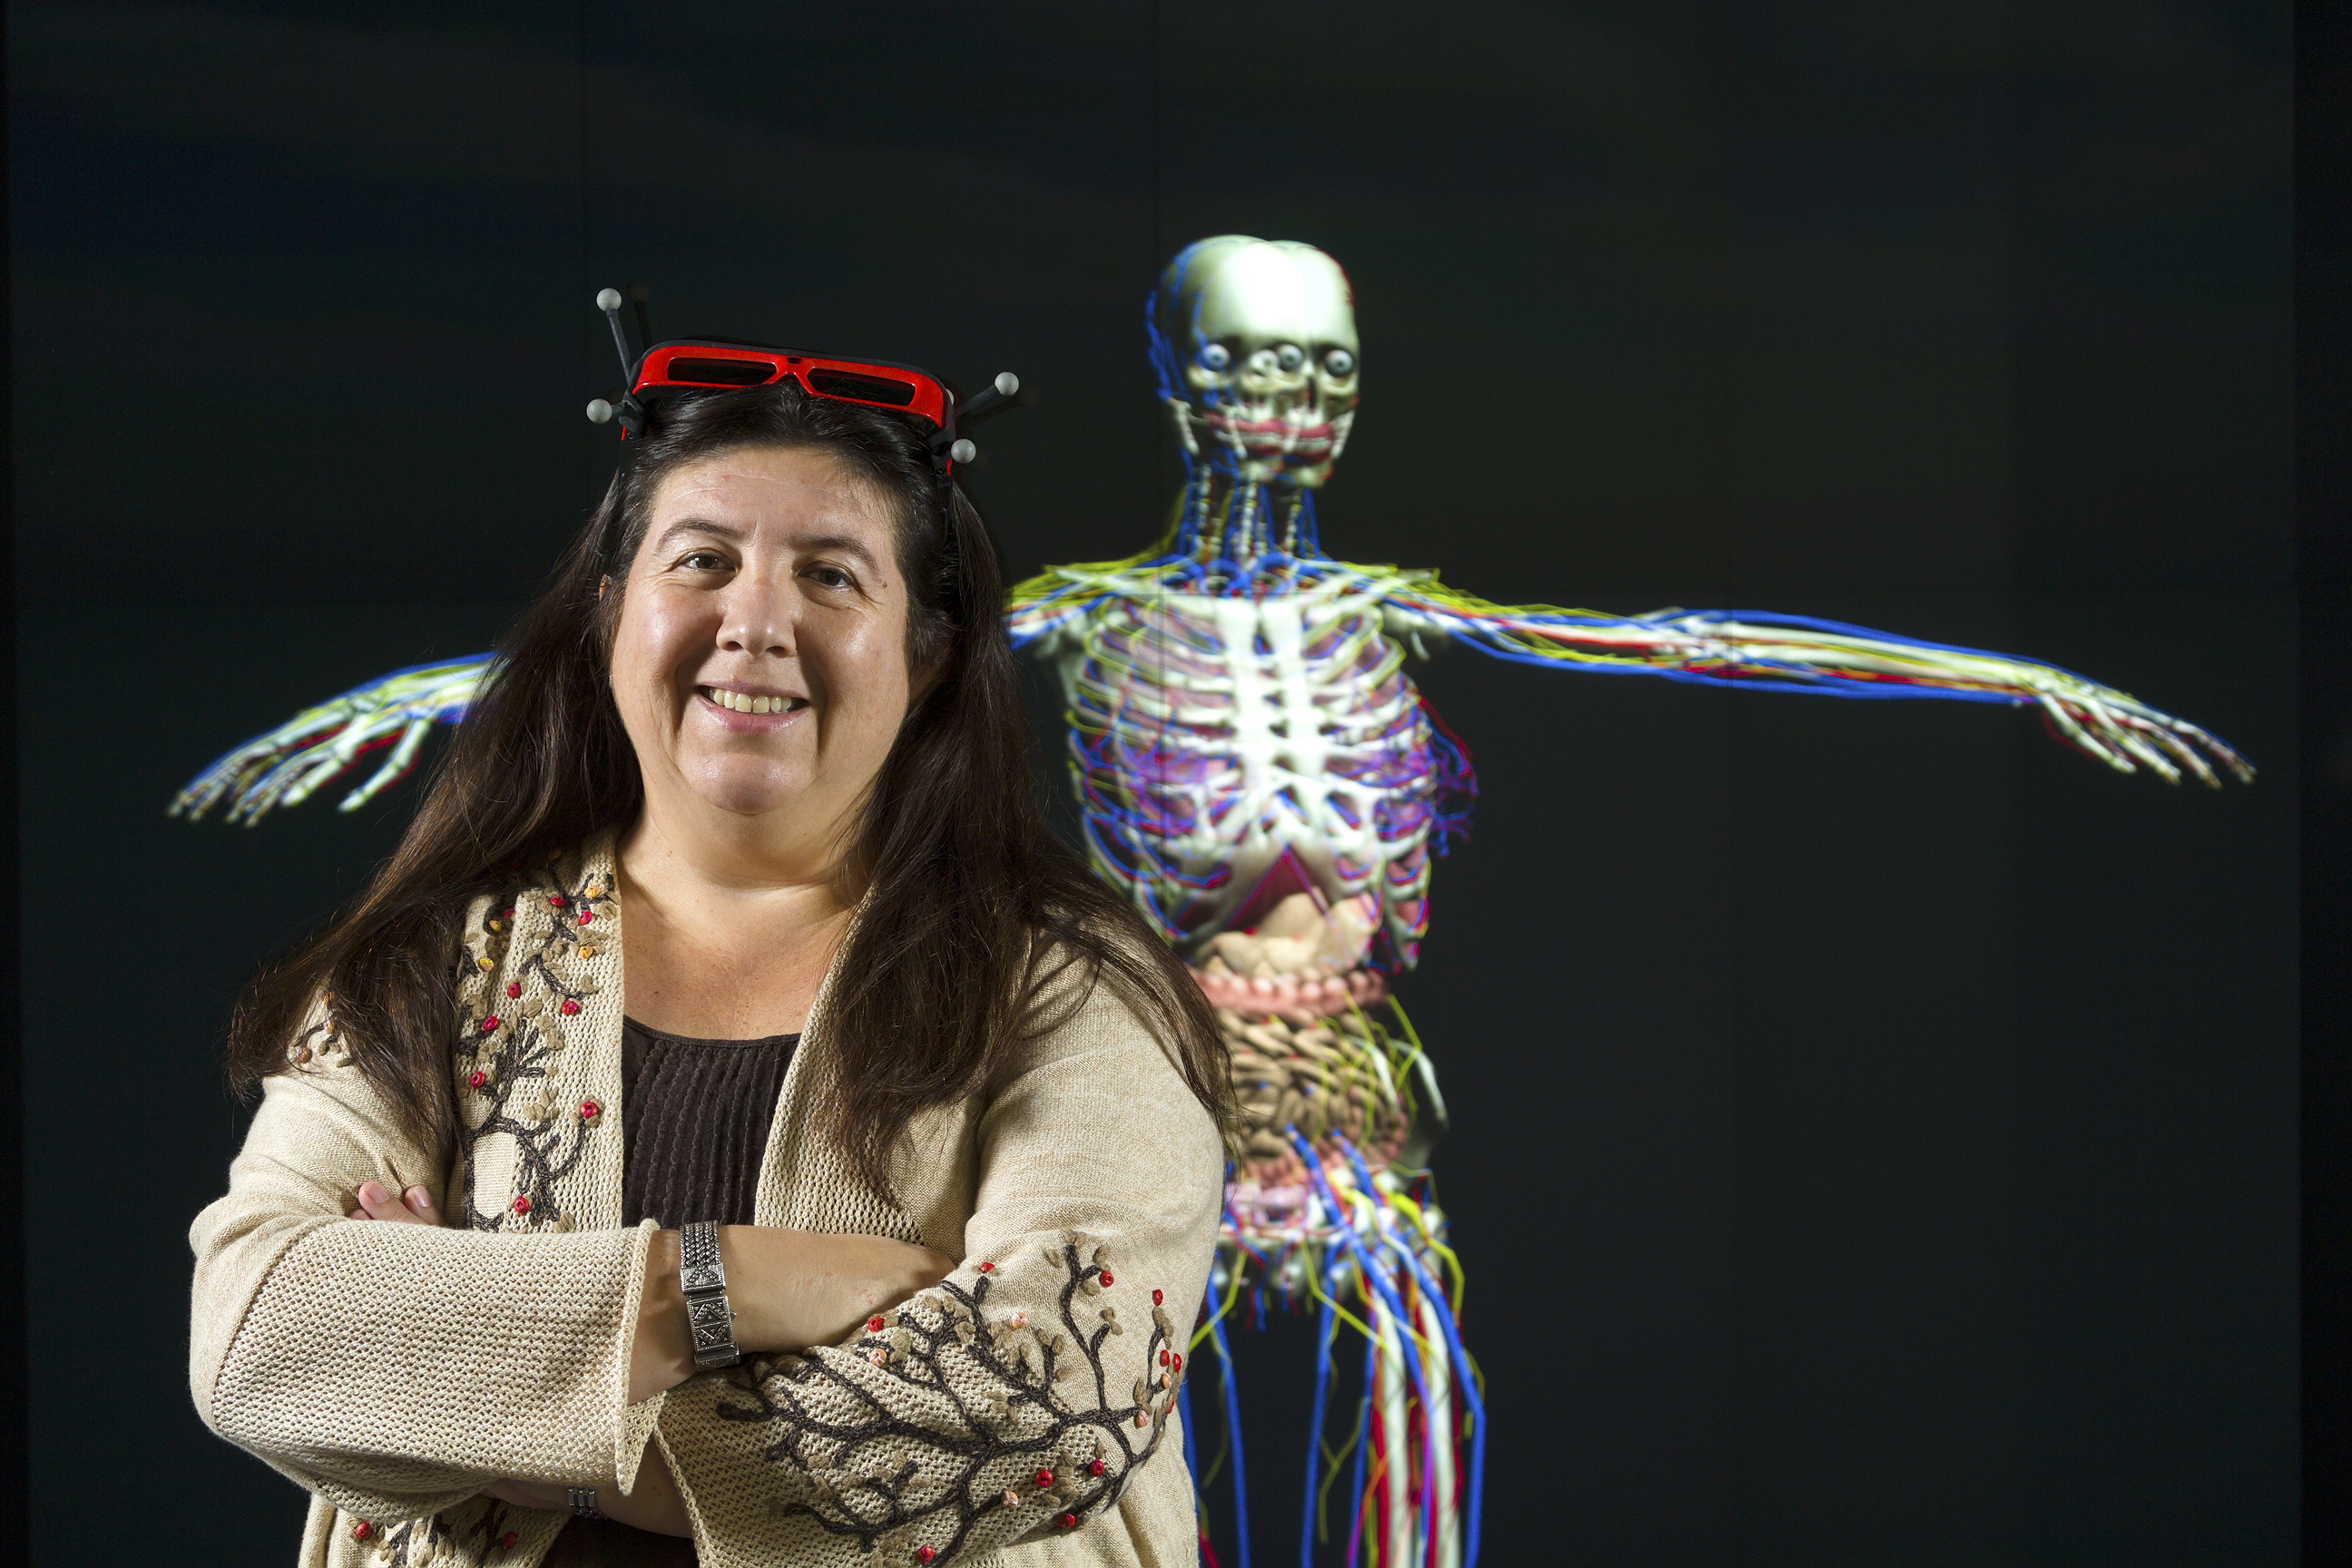 Dr. Carolina Cruz-Neira with a virtual human skeleton in the background